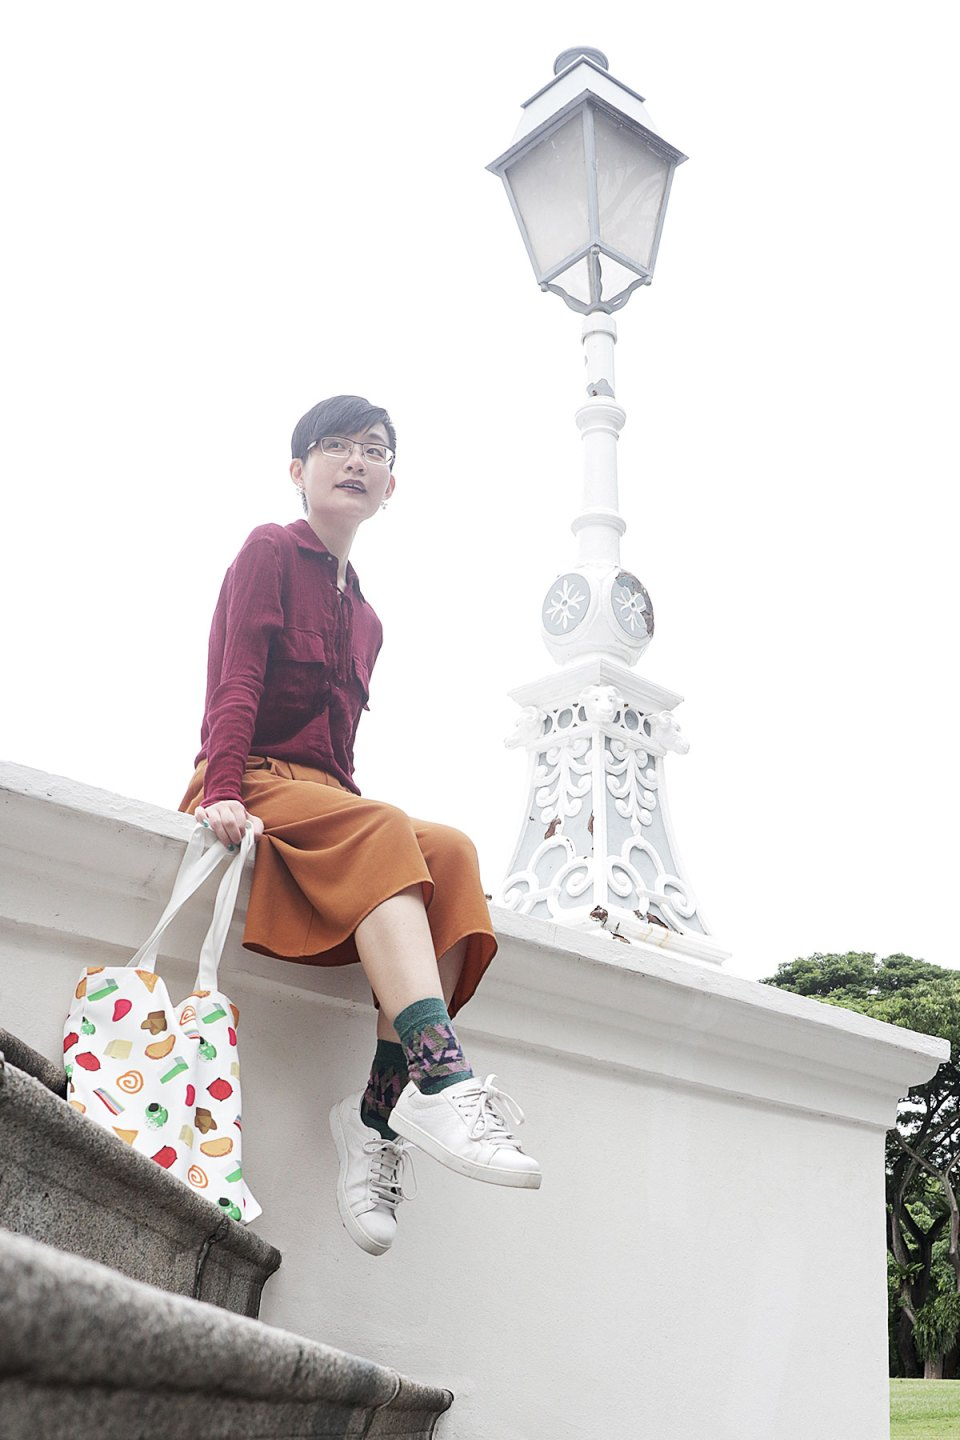 OOTD: Pomelo Fashion blouse, Mango pants, OWNDAYS glasses, Paper Planes sneakers.